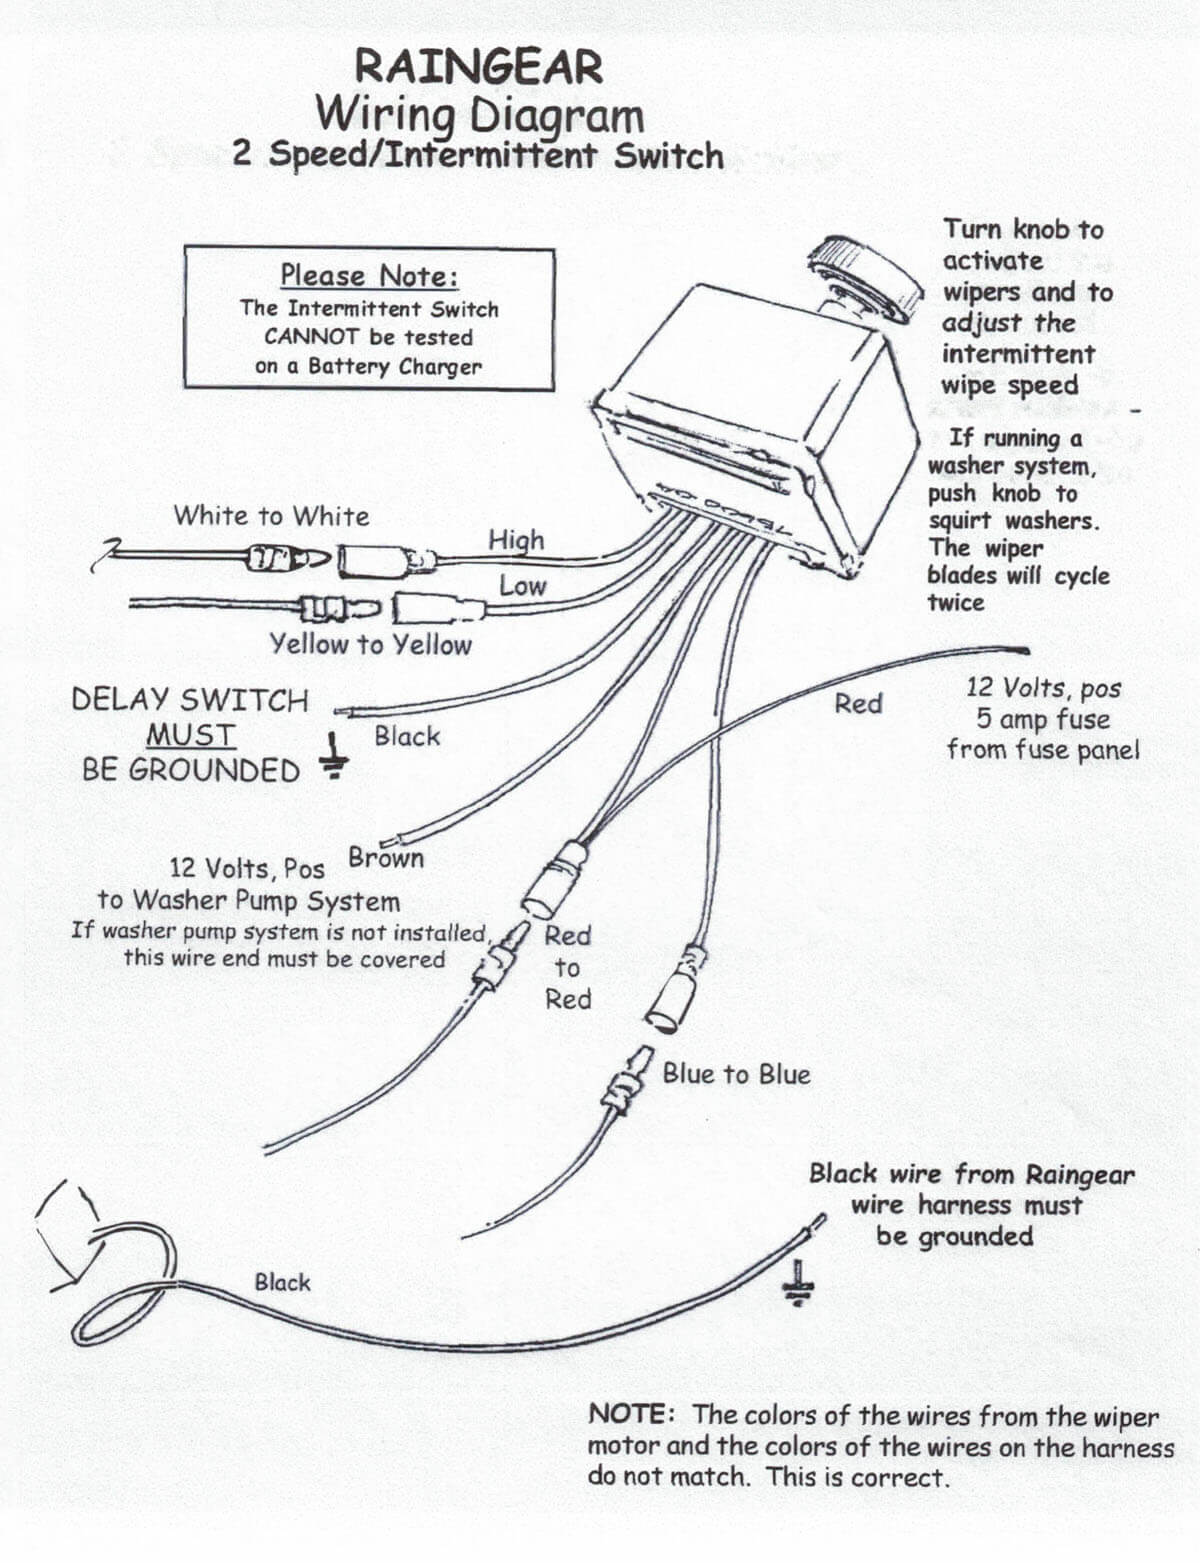 68 Camaro Headlight Wiring Diagram Gota Wiring Diagram